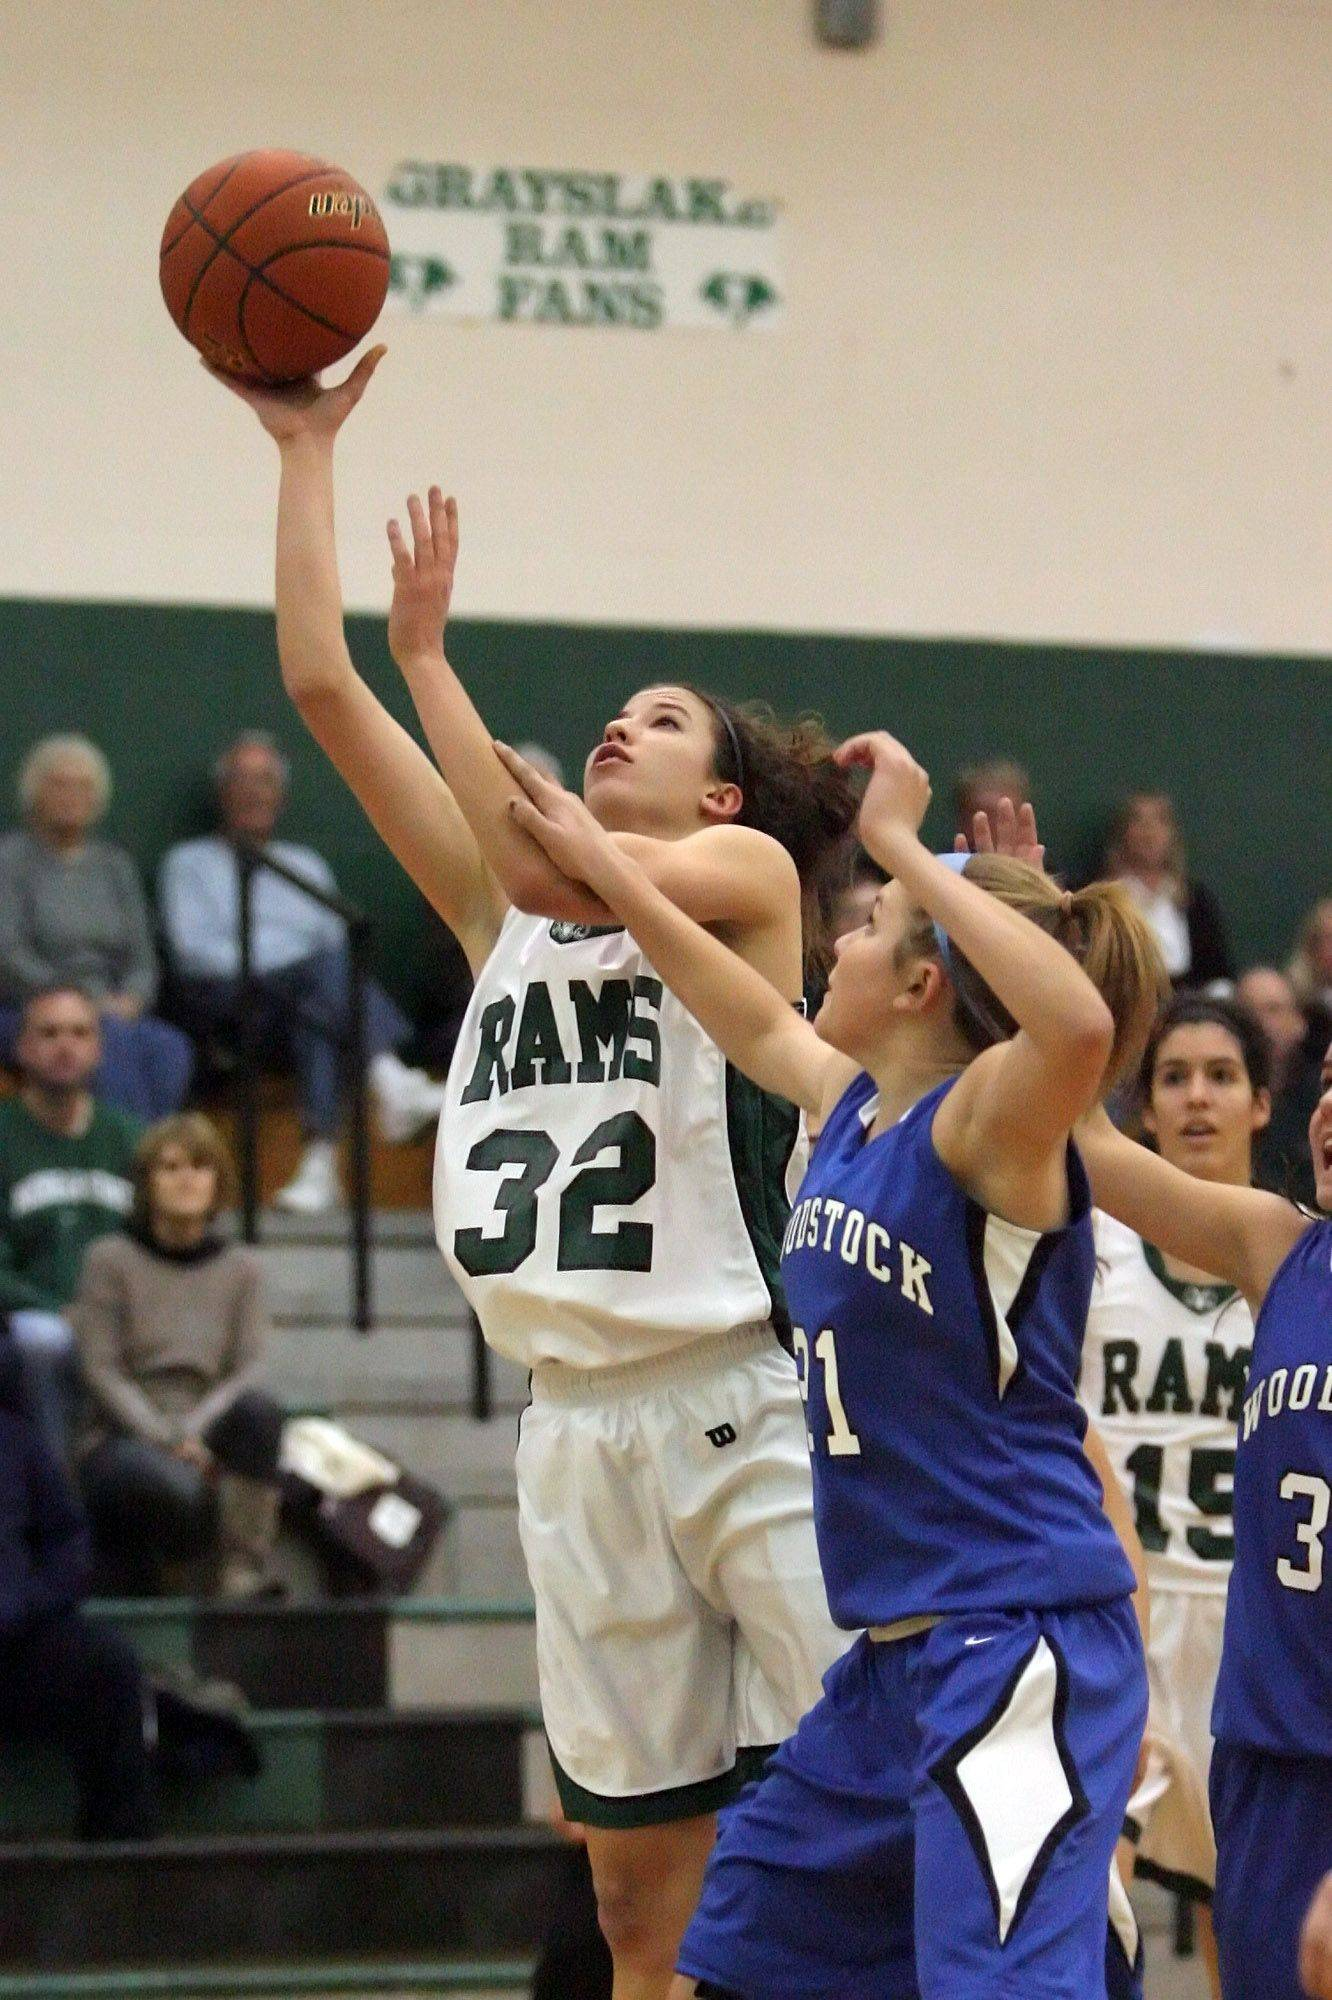 Images from the Woodstock at Grayslake Central girls basketball game Tuesday, December 14.